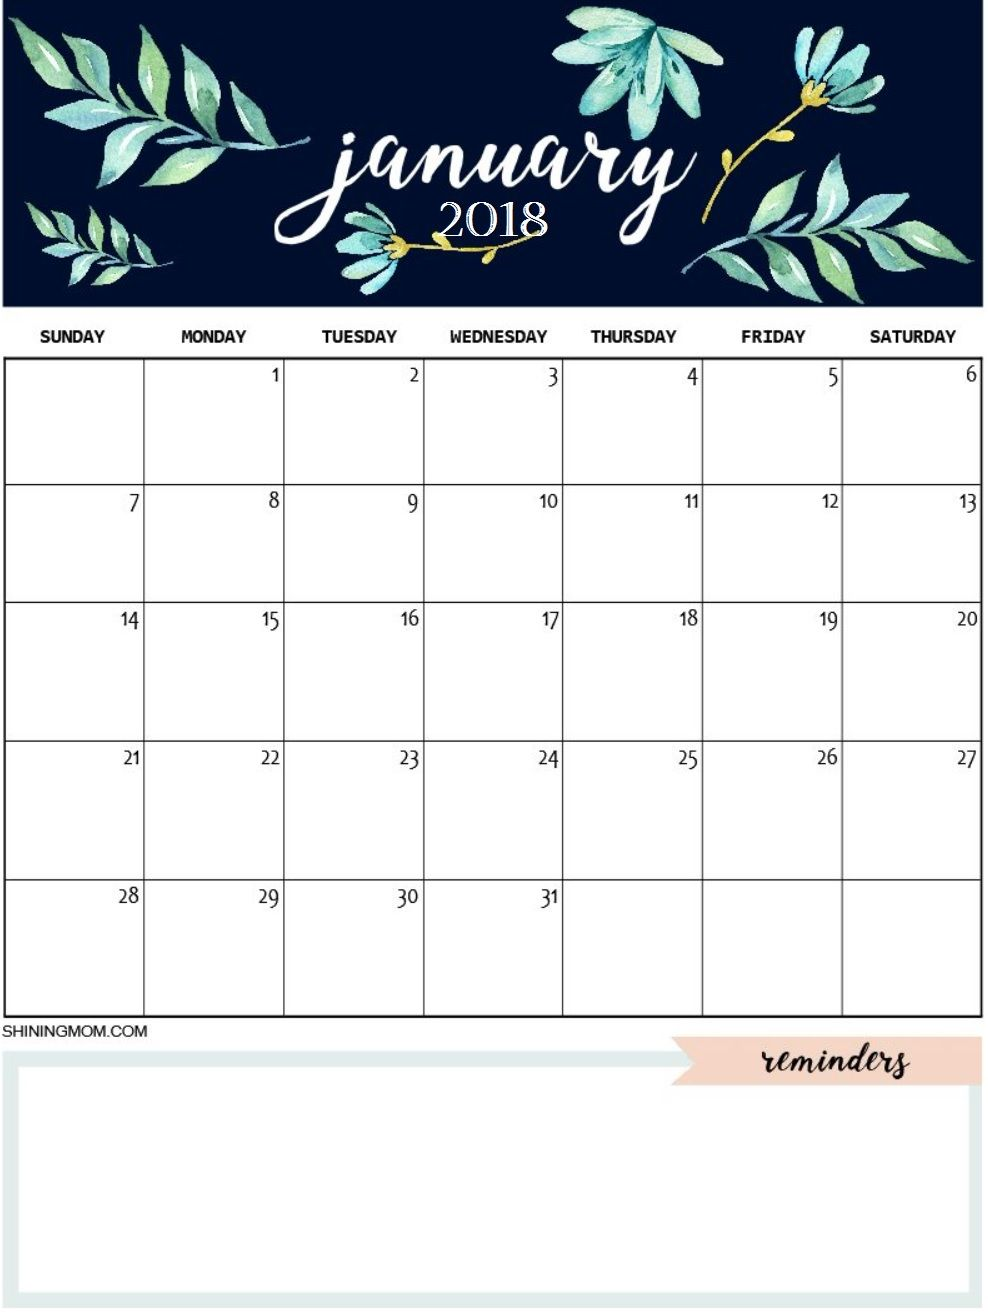 image relating to Cute Calendars called January 2018 Adorable Calendar MaxCalendars January calendar